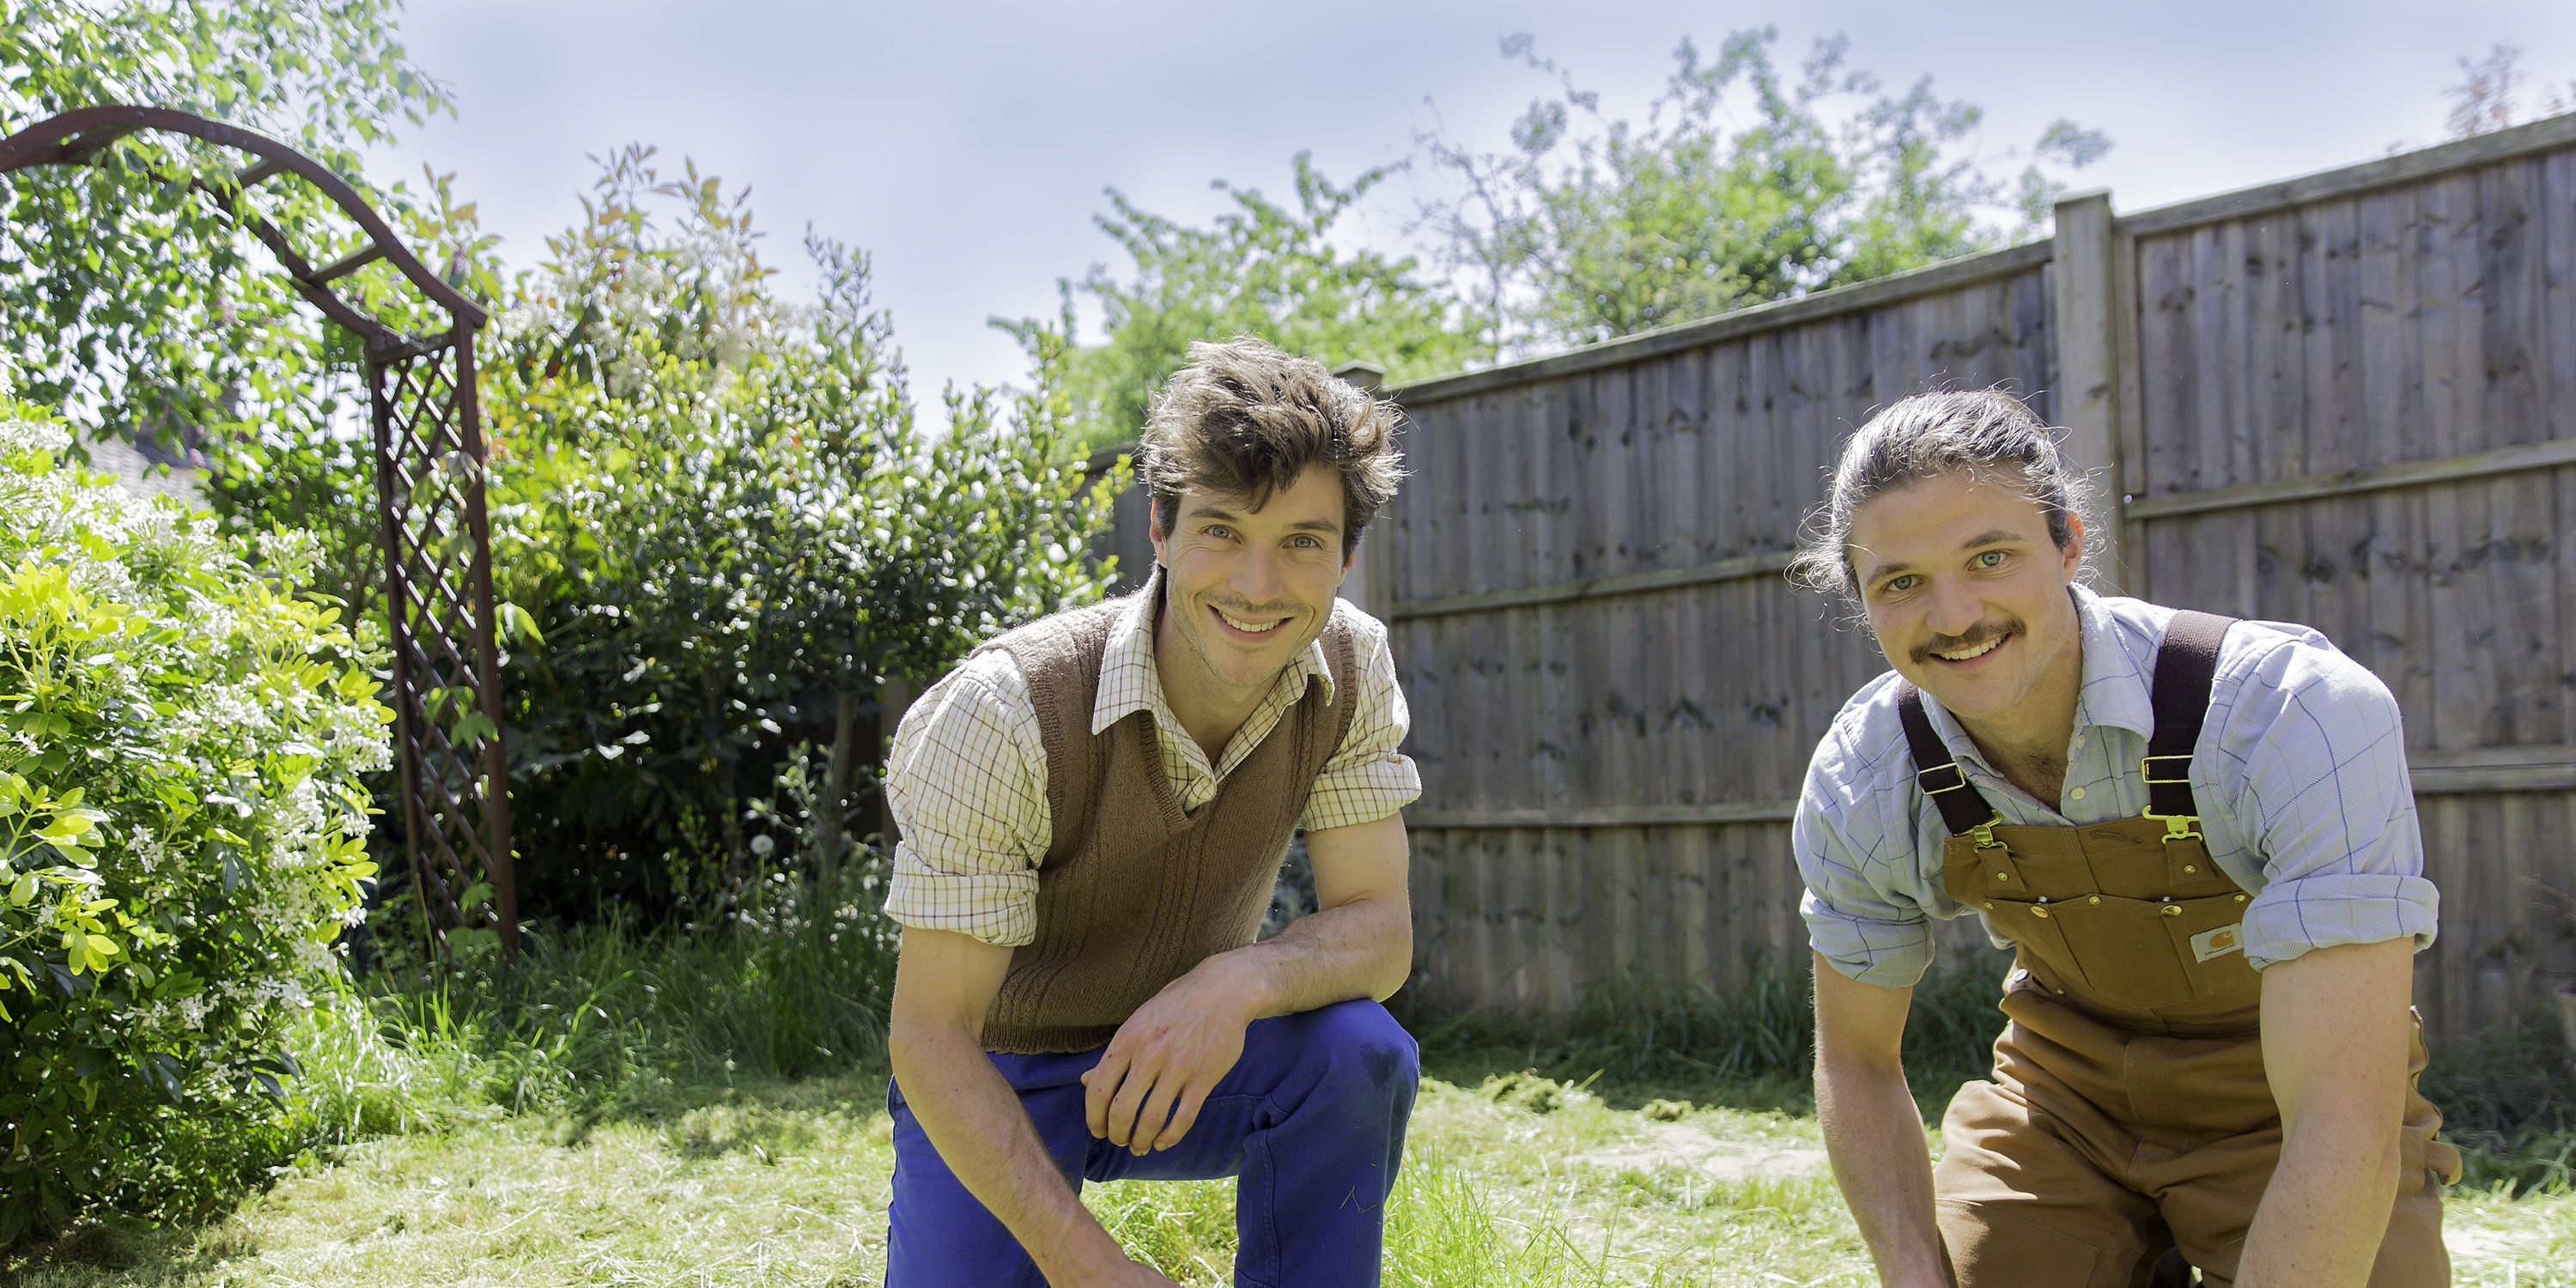 The Rich Brothers' step-by-step gardening guide for millennials and beginners